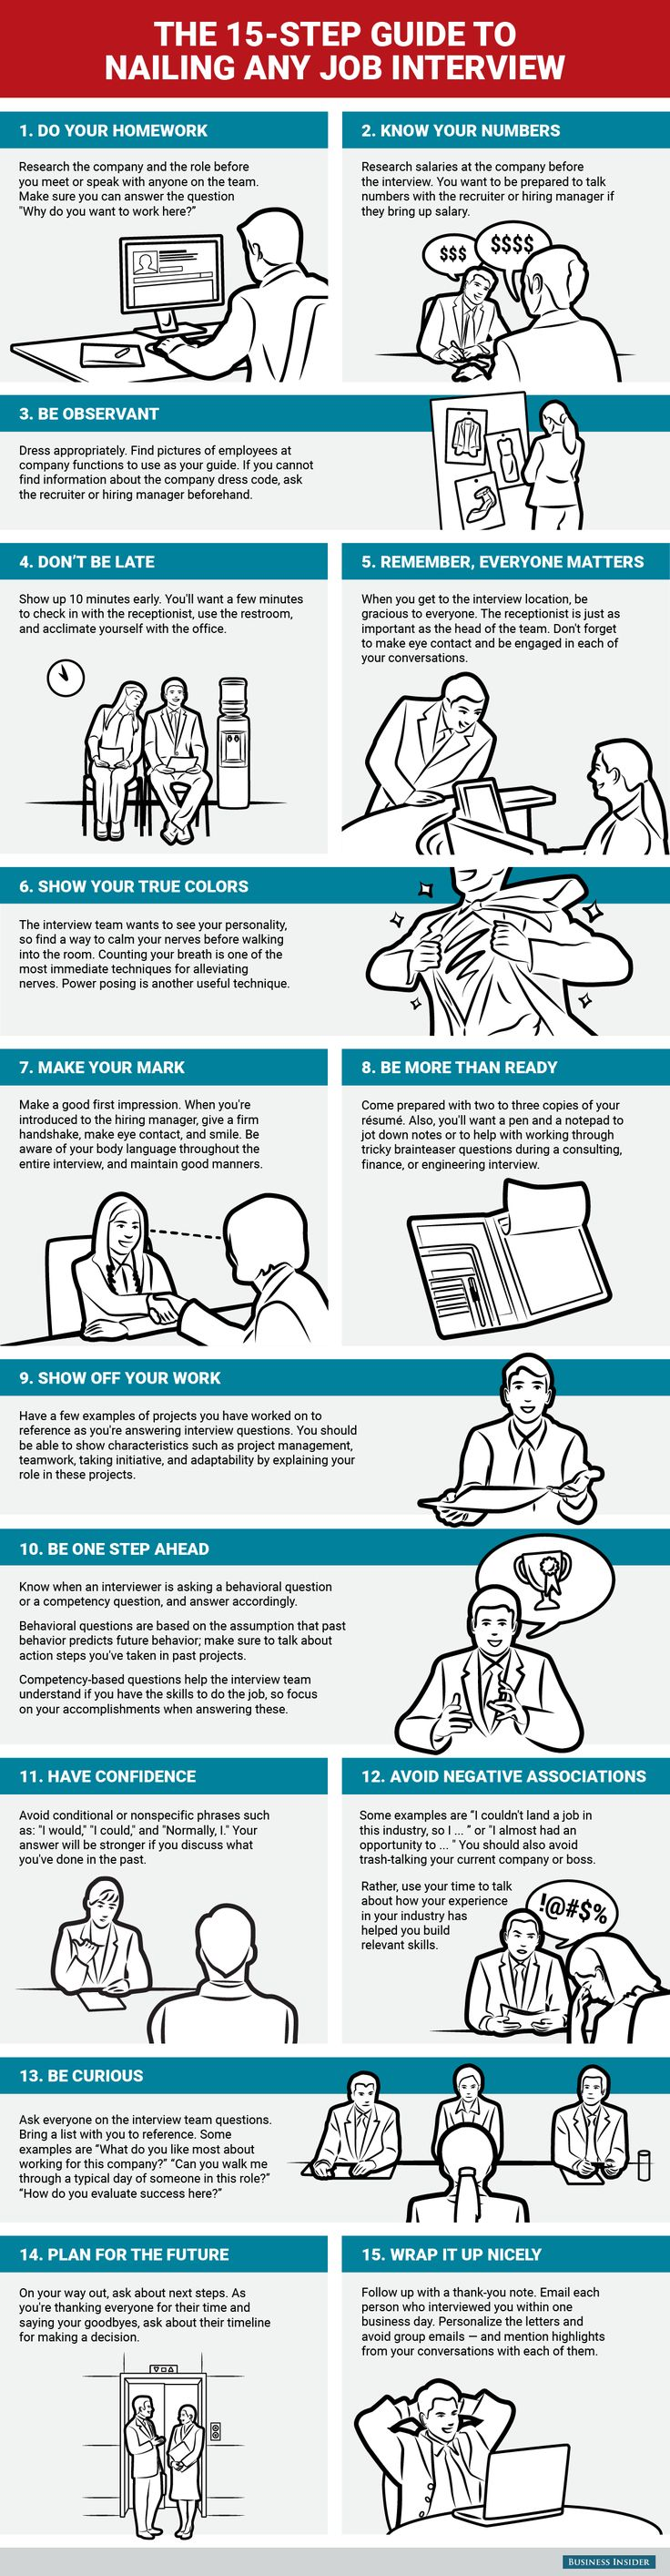 Guide to nailing any job interview - Business Insider